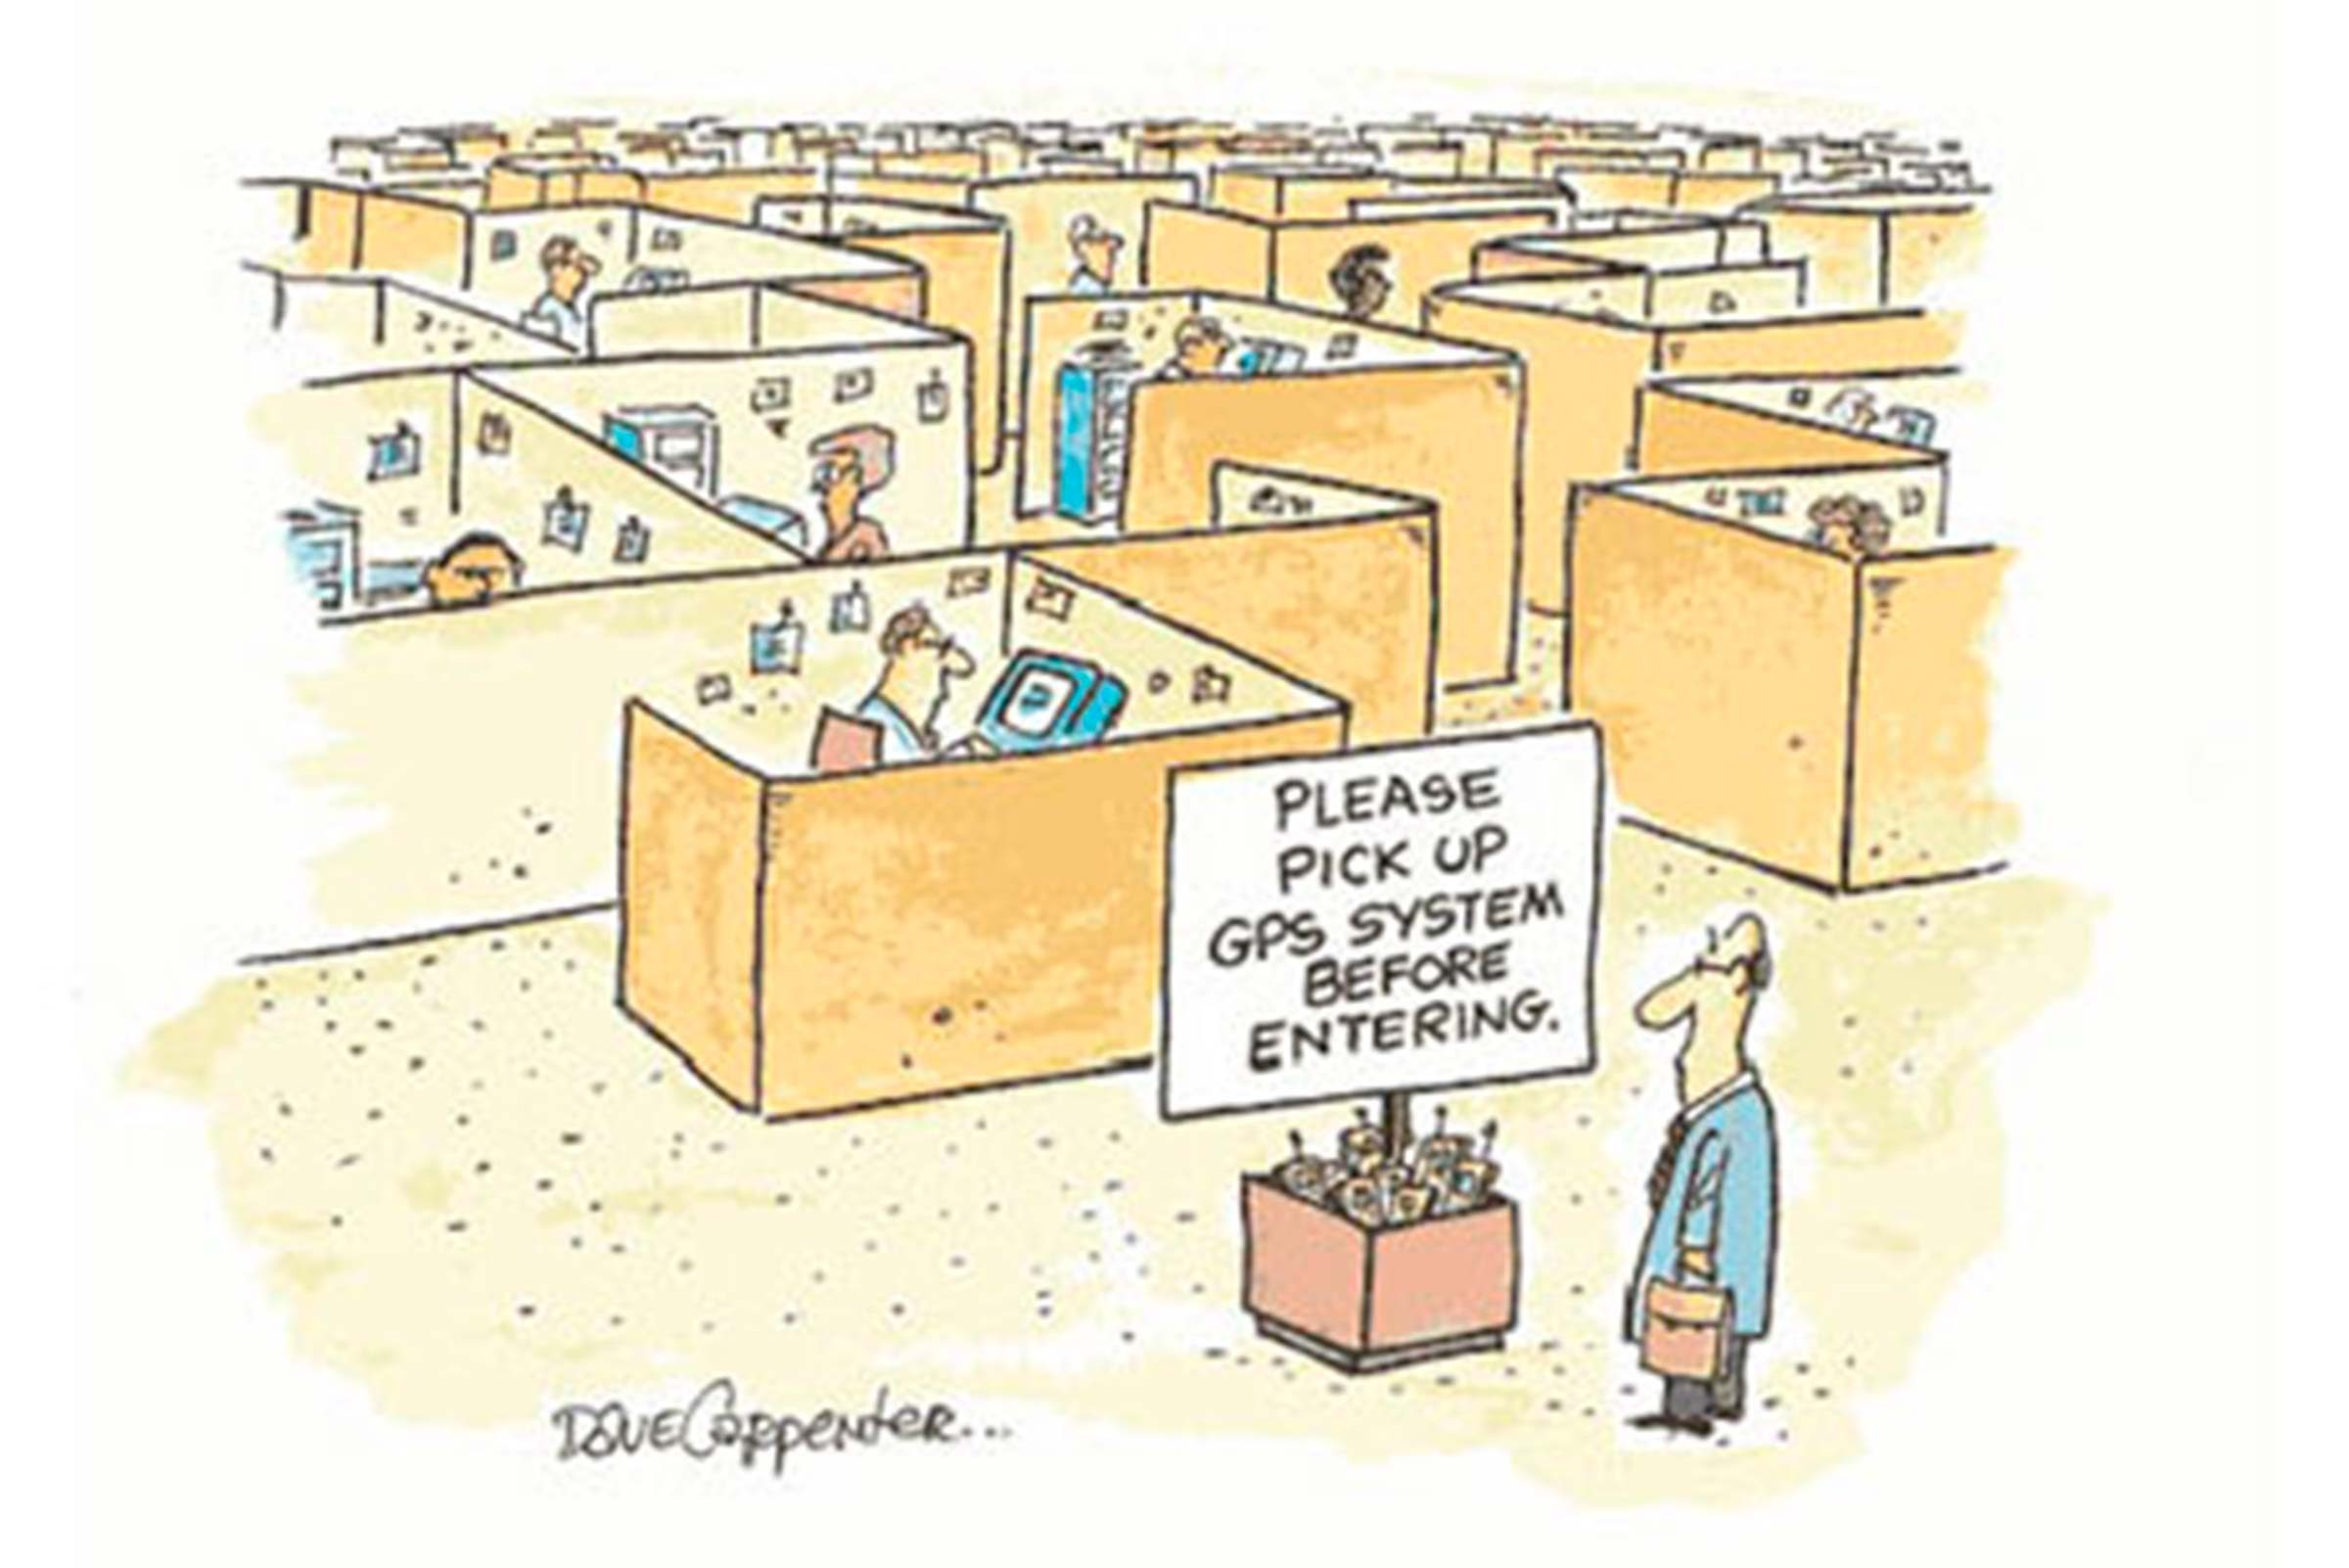 80+ Funny Work Cartoons to Get Through the Week | Reader's